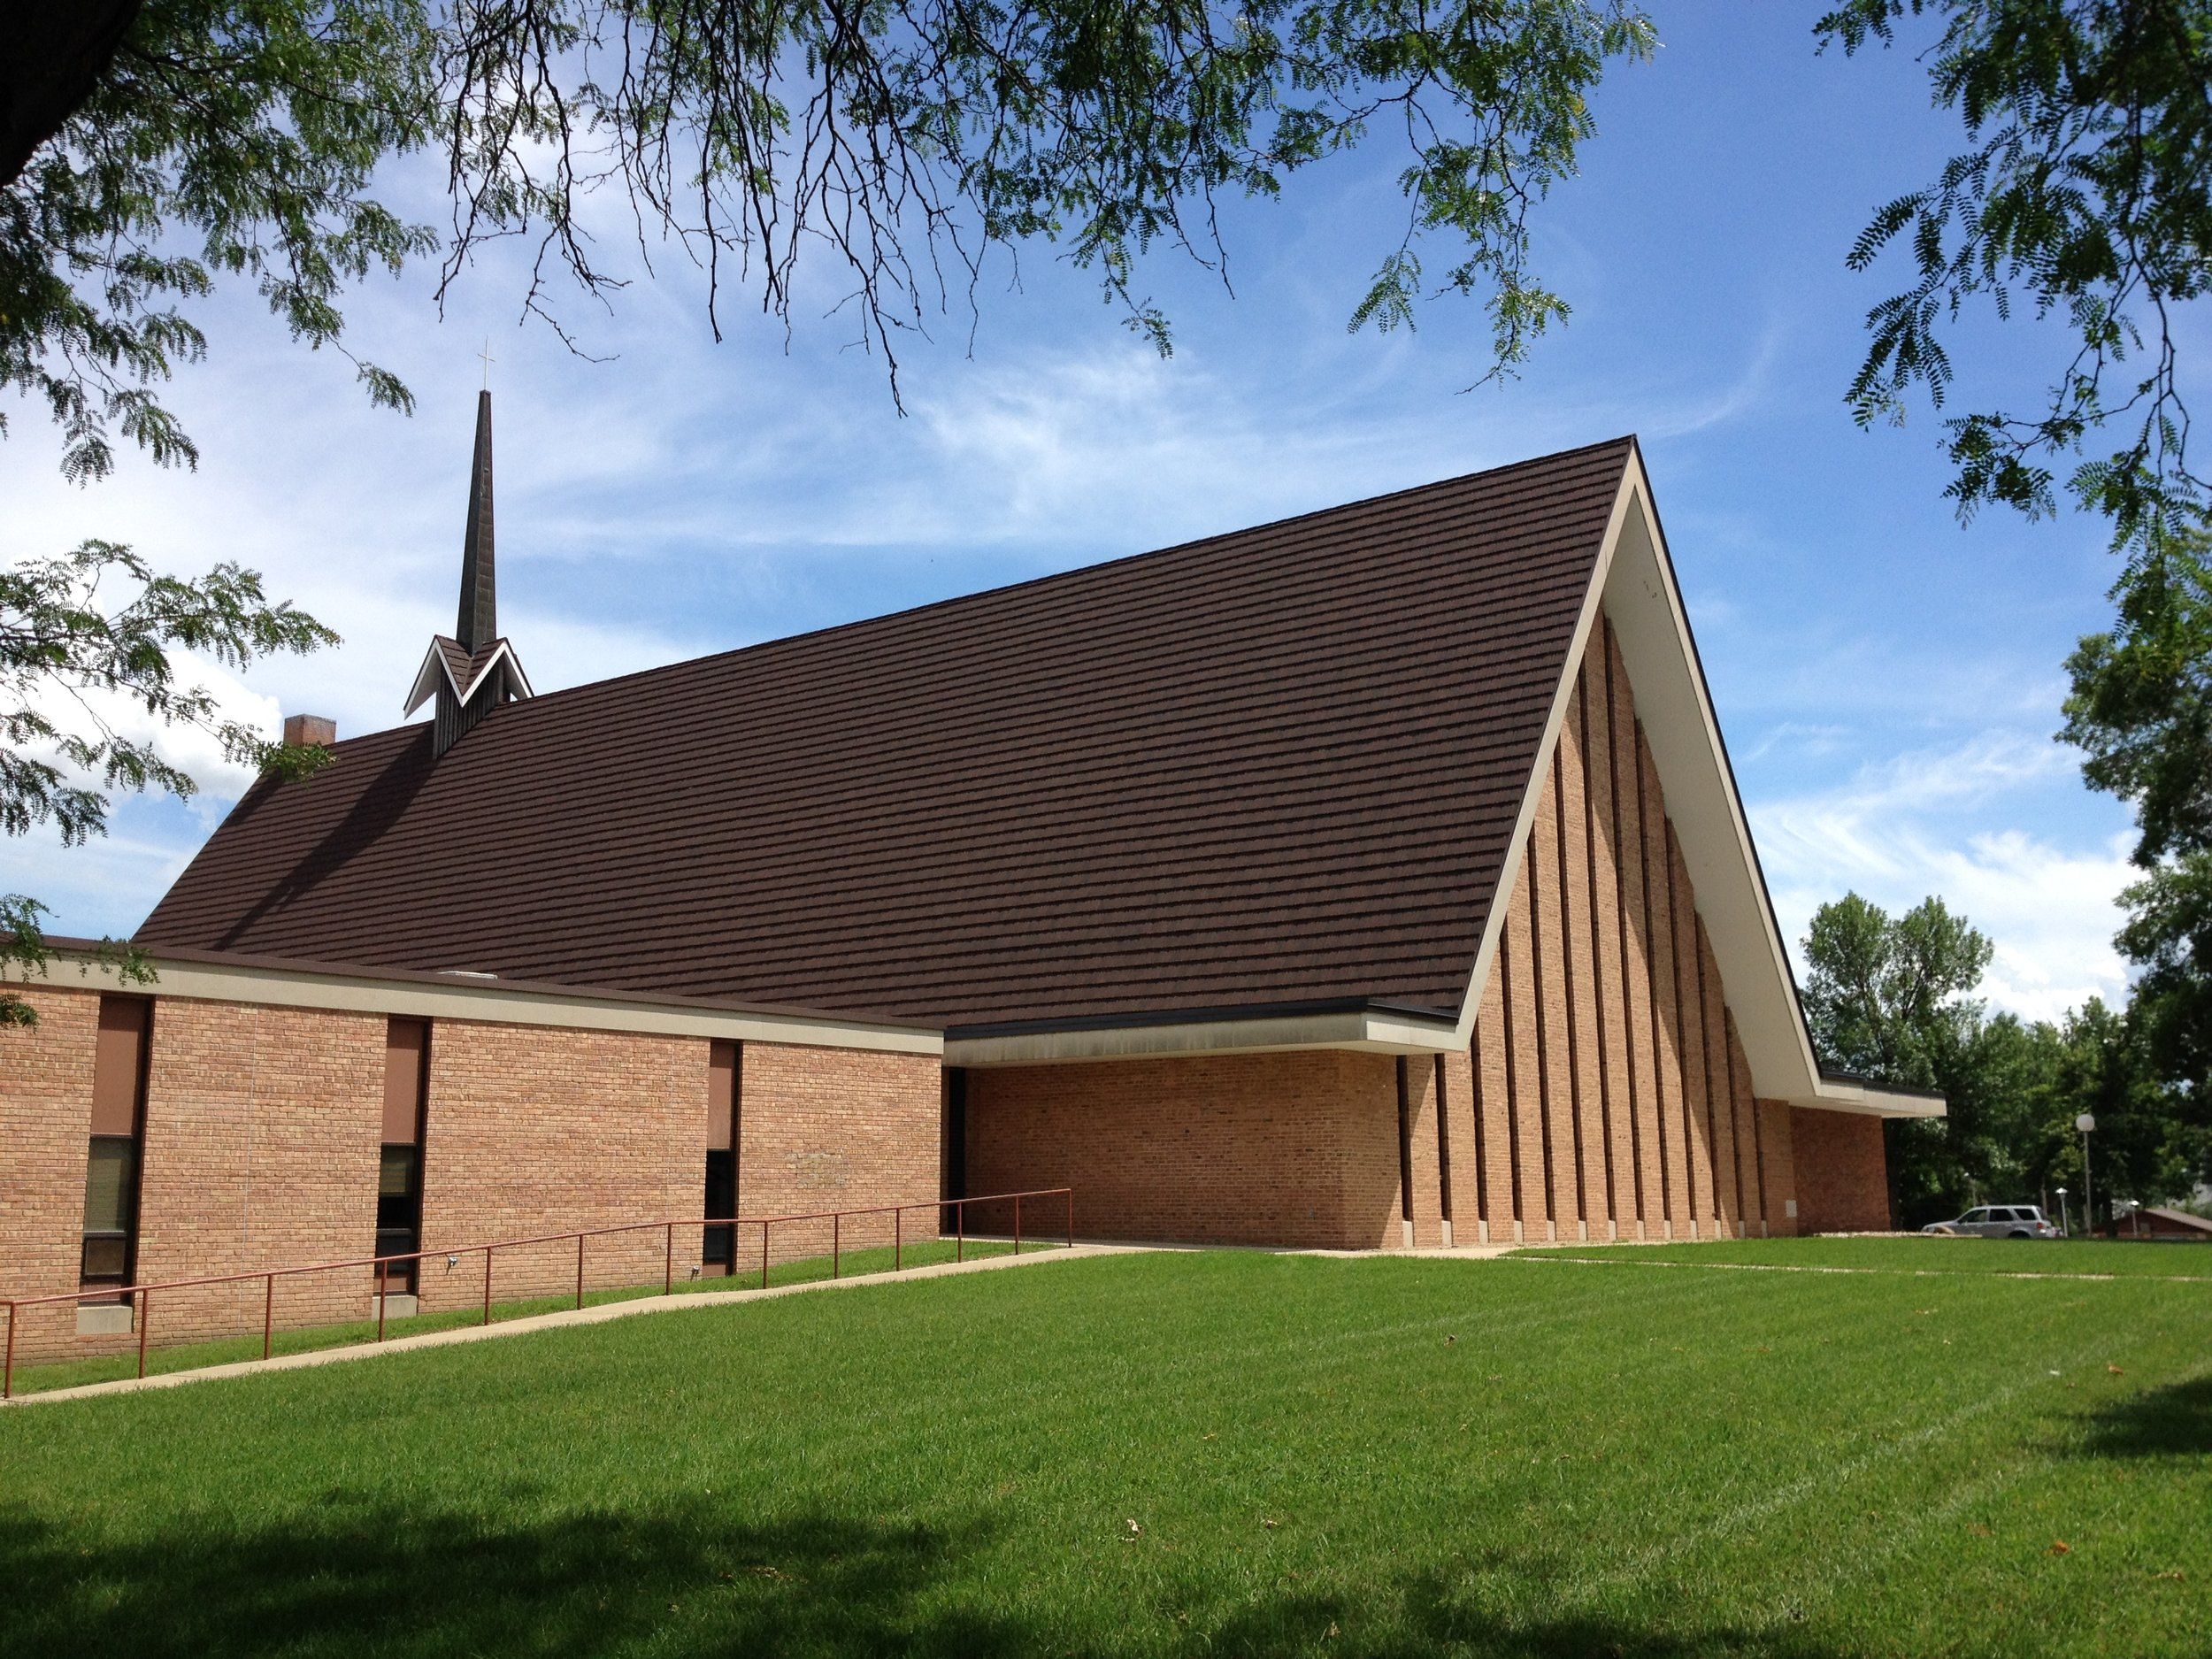 Our spacious mid-century modern sanctuary is the heart of our building at First Presbyterian Church of Sioux Falls, but we have many other rooms available to rent within our walls -wedding venue, anniversary celebration, classroom spaces, and so much more!